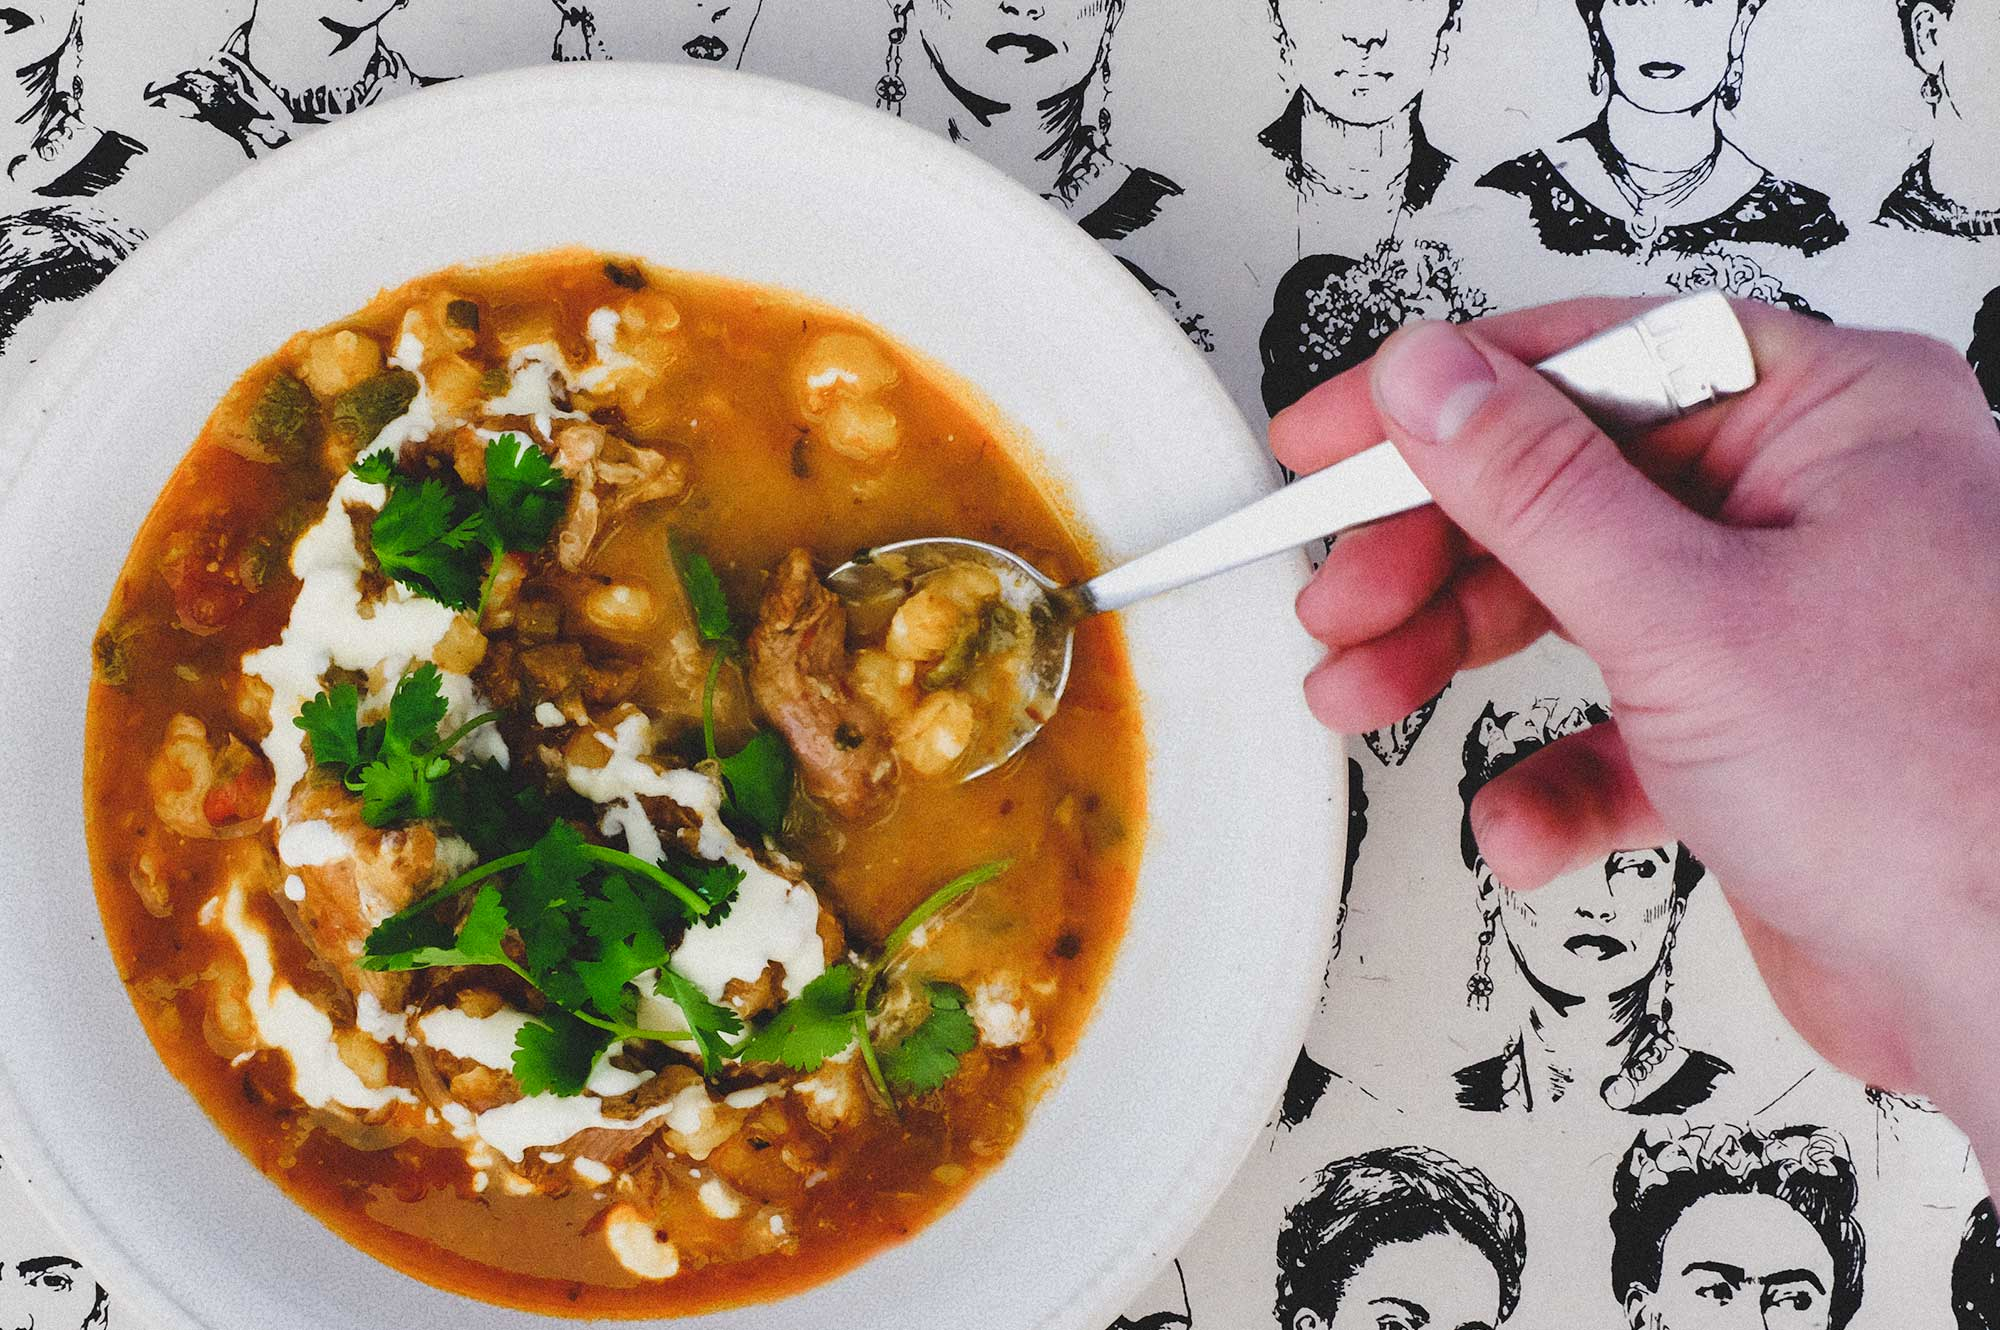 Posole - Mexican Pork & Hominy Soup